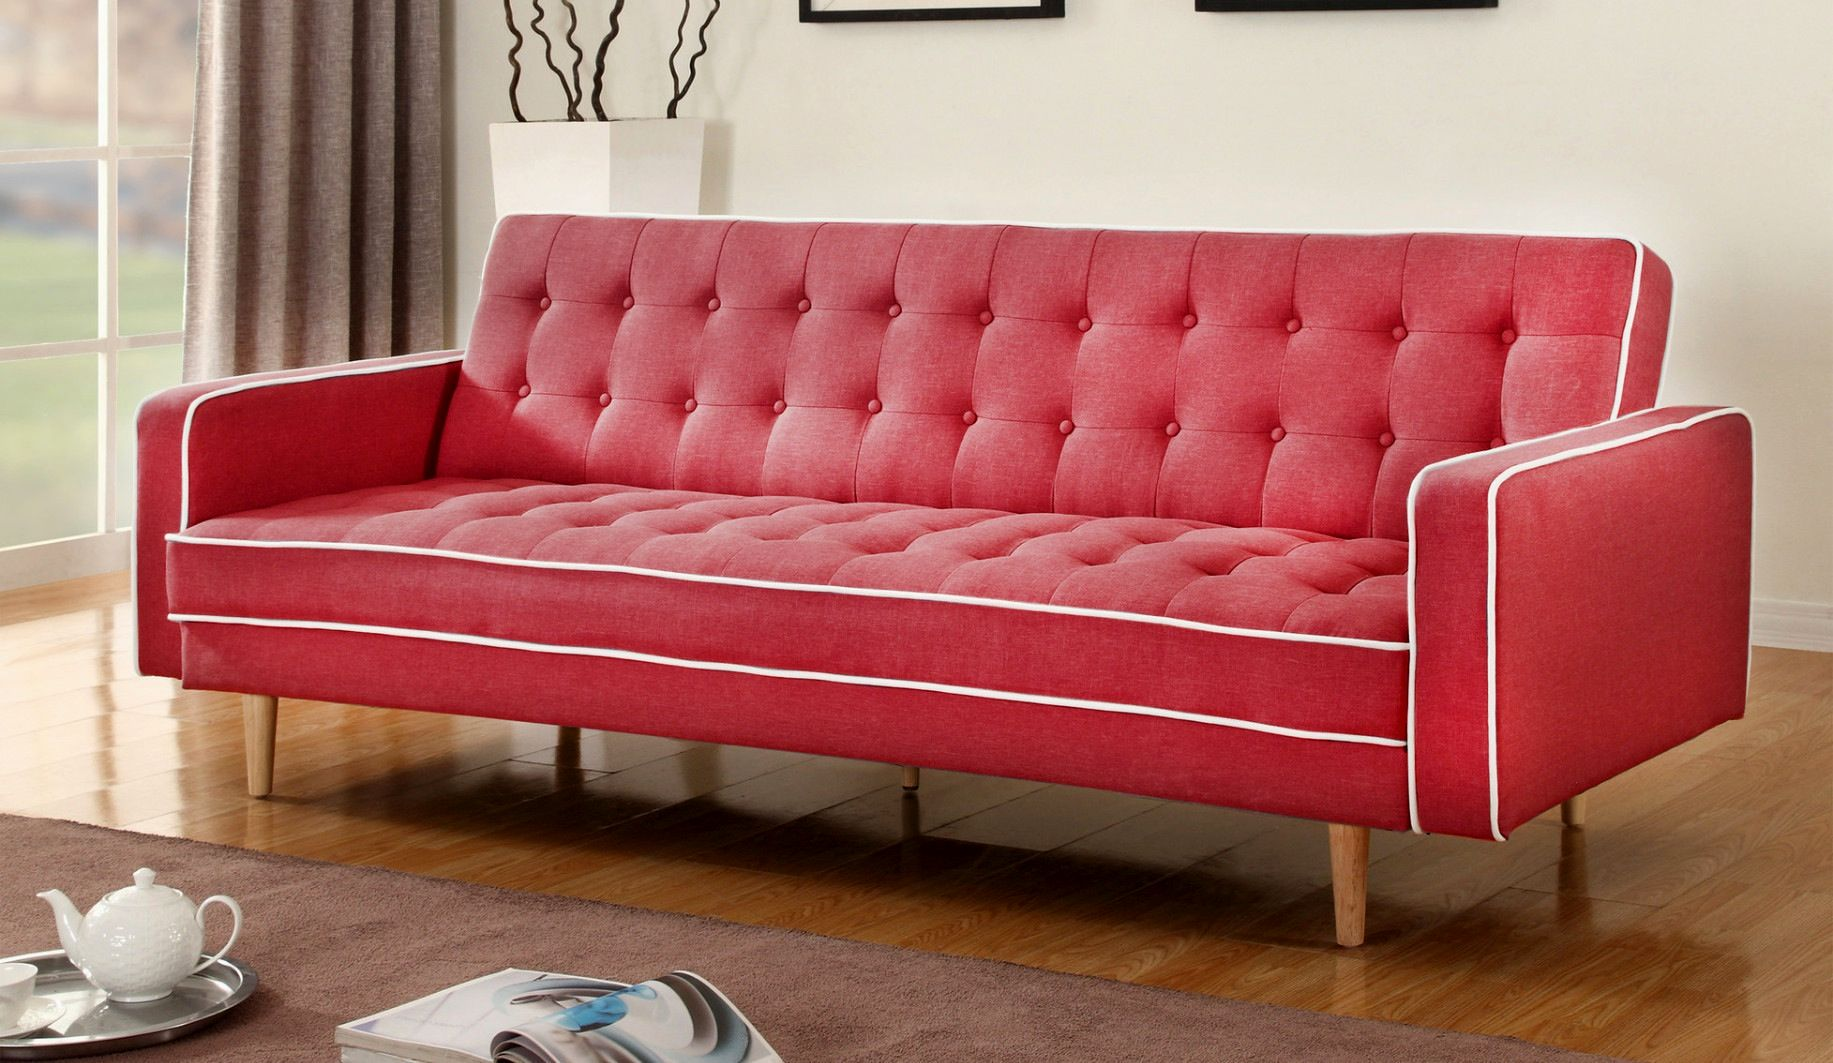 cool mid century sleeper sofa online-Cool Mid Century Sleeper sofa Image